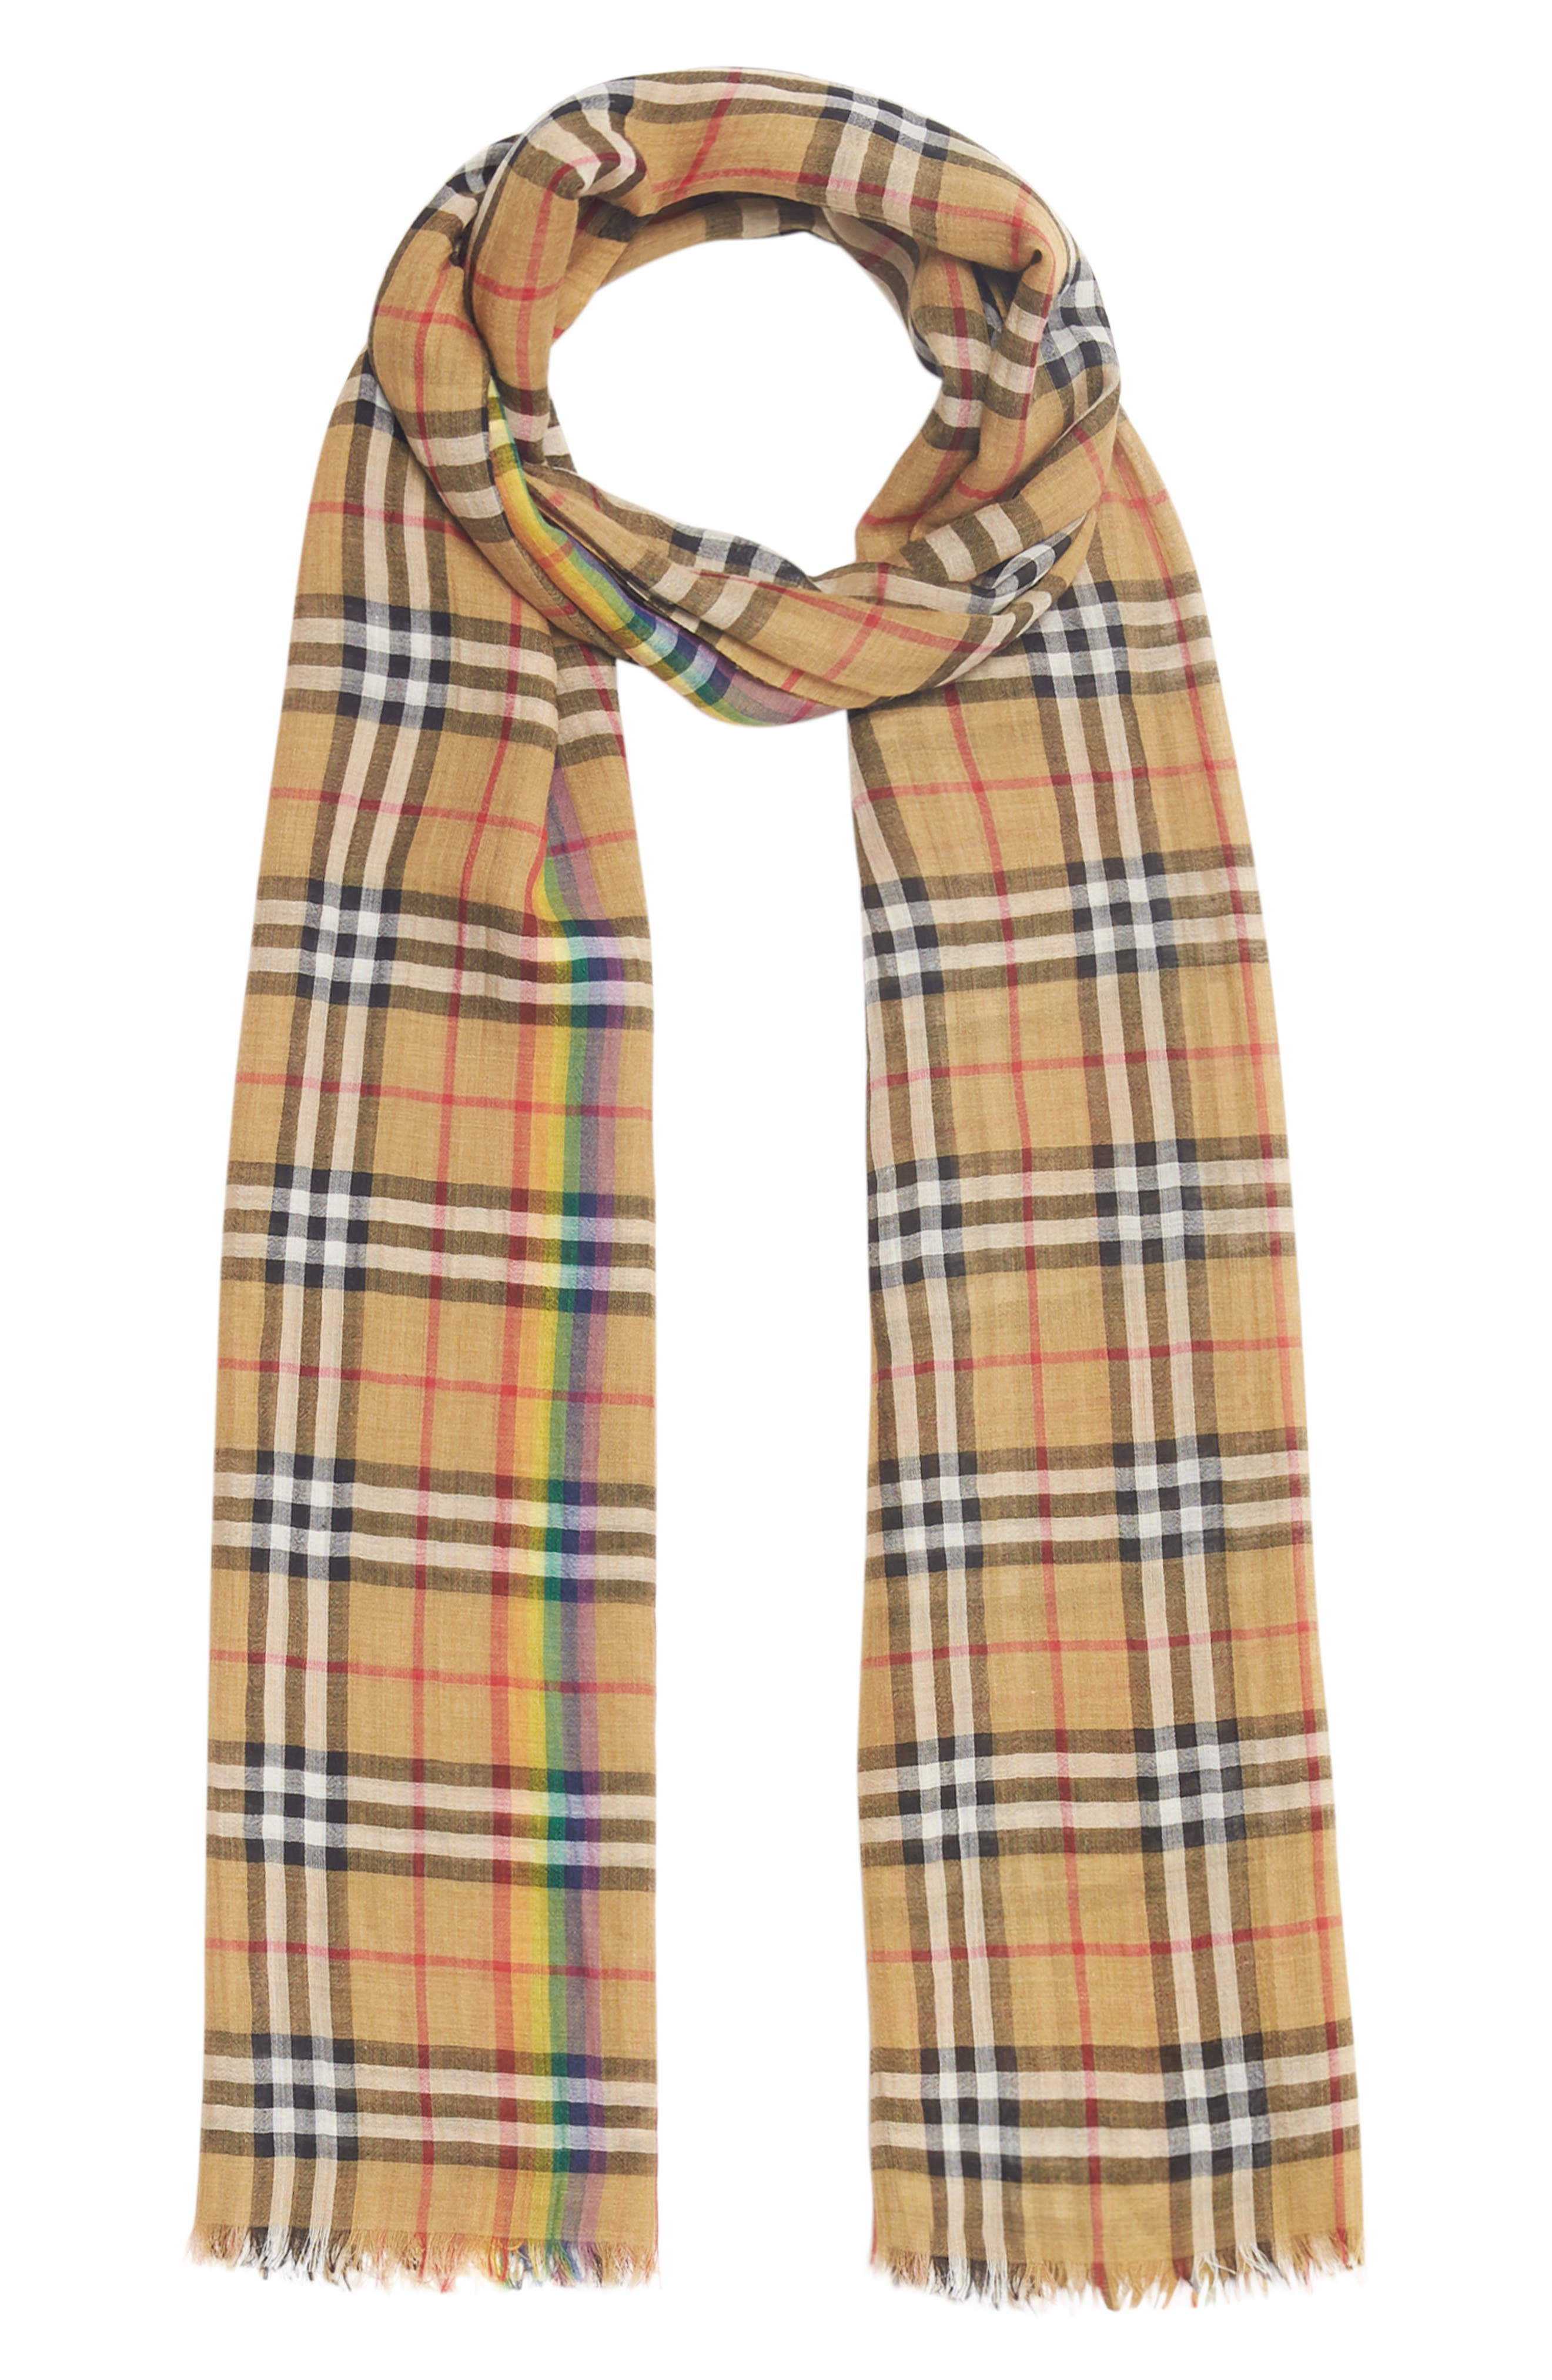 BURBERRY,                             Rainbow Stripe Vintage Check Scarf,                             Alternate thumbnail 3, color,                             ANTIQUE YELLOW/ RAINBOW